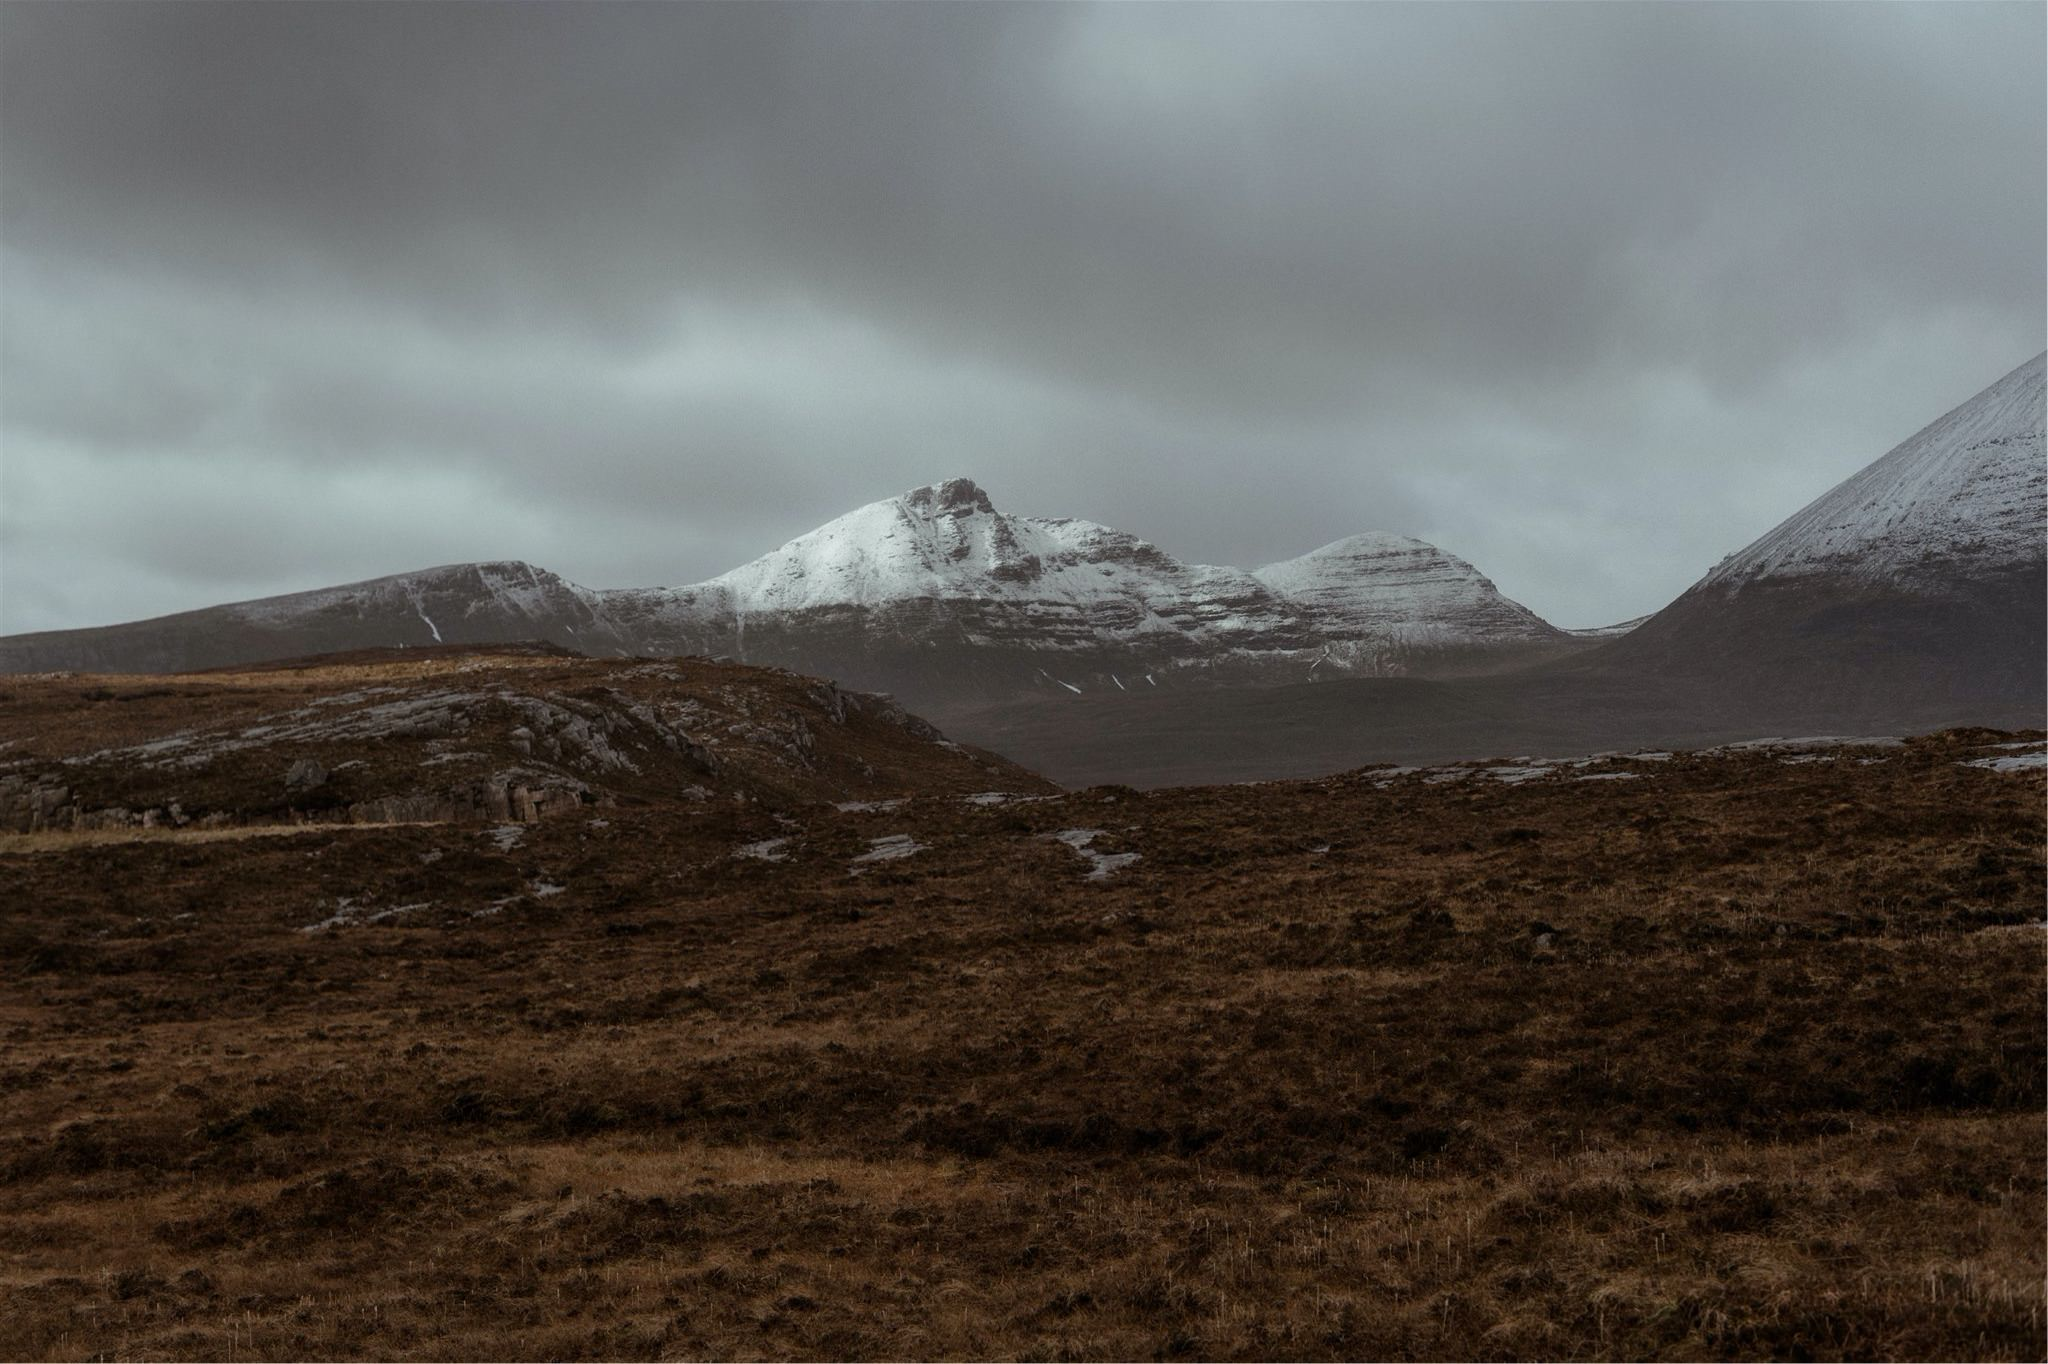 View of snowcapped mountains and moorland in Assynt, Scotland